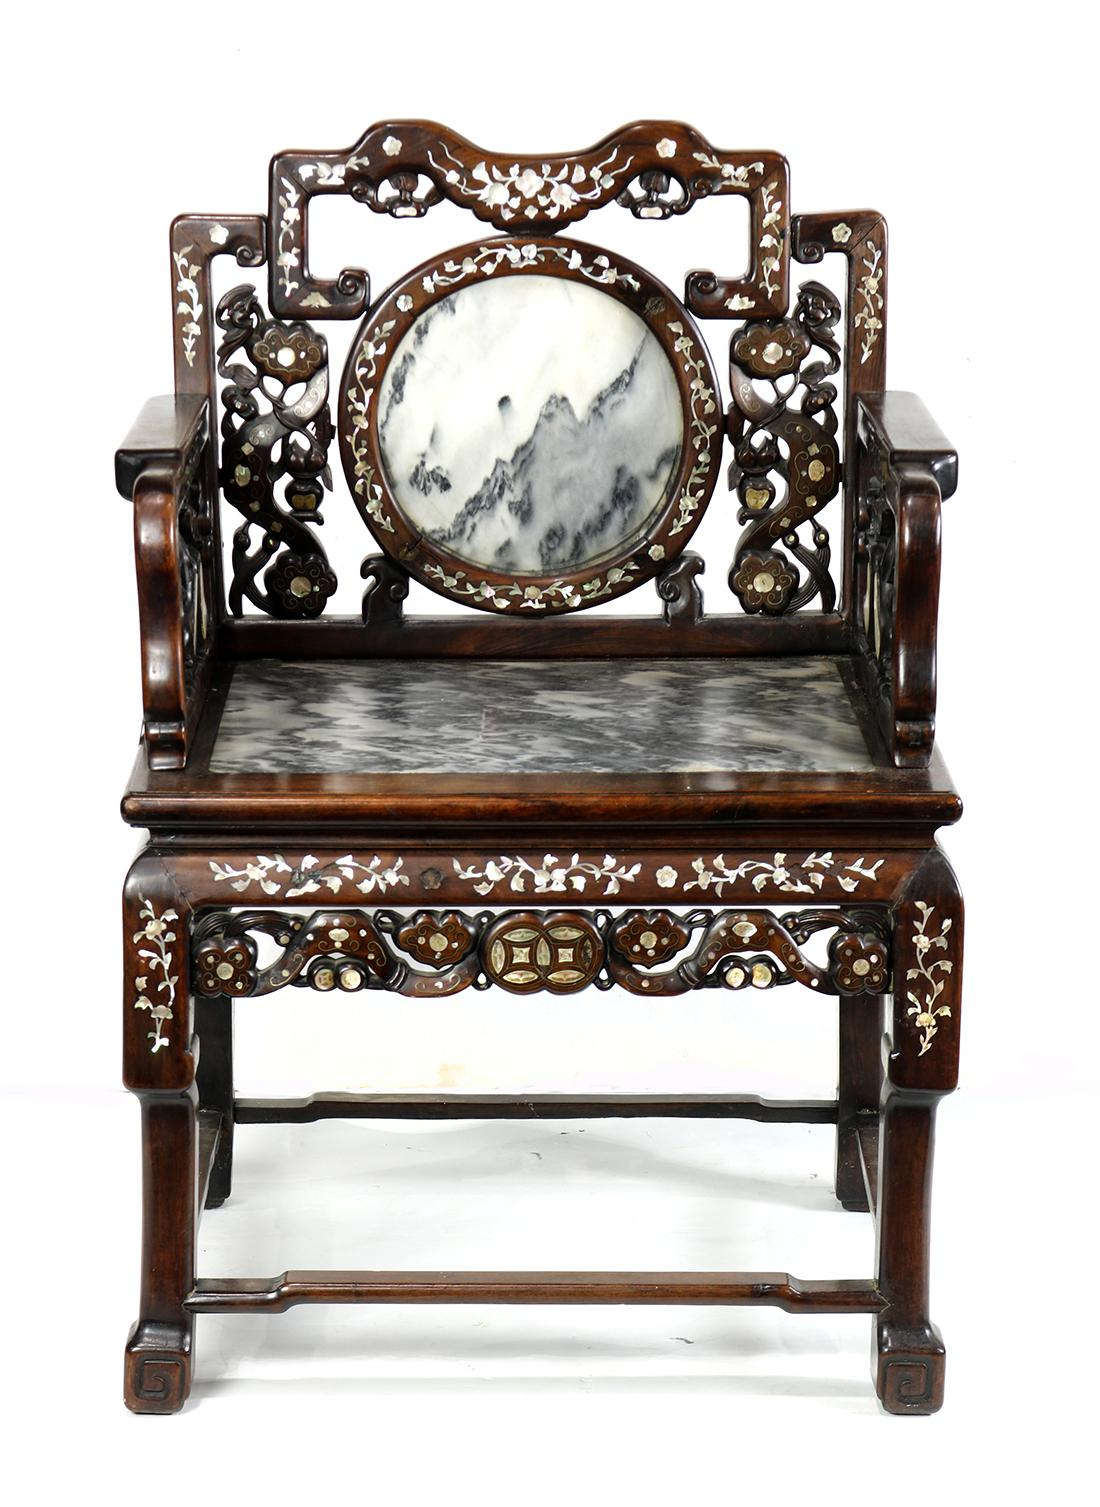 Chinese Marble And Mother Of Pearl Inlaid Chair